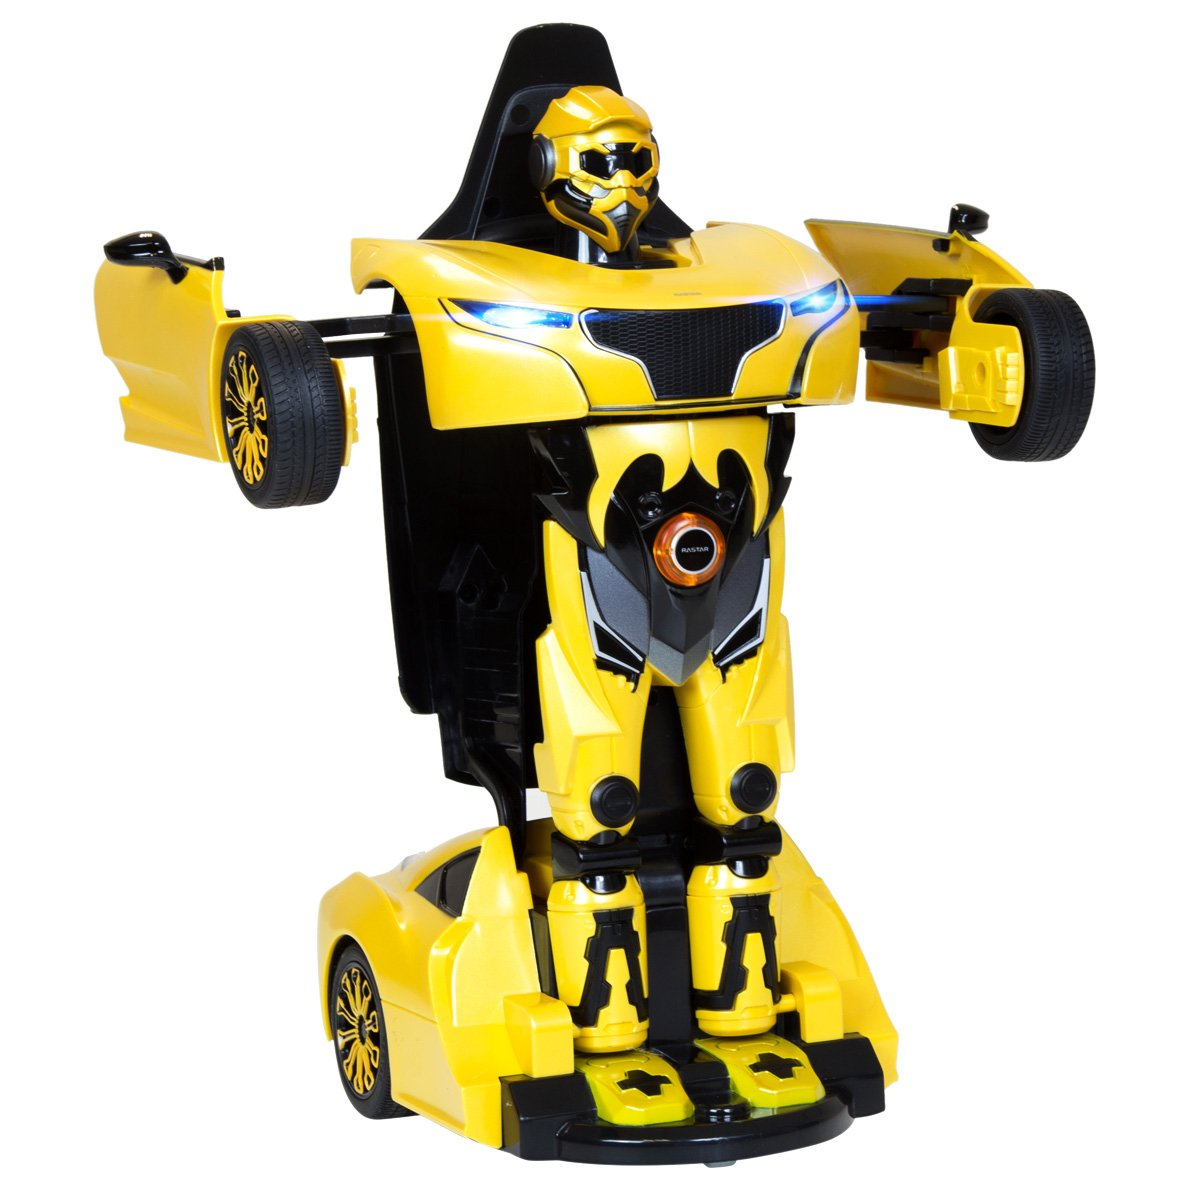 Charles Bentley RS X Man Rastar Licensed Transformer Robot Telecomando Auto 2 in 1 Giocattolo - Giallo